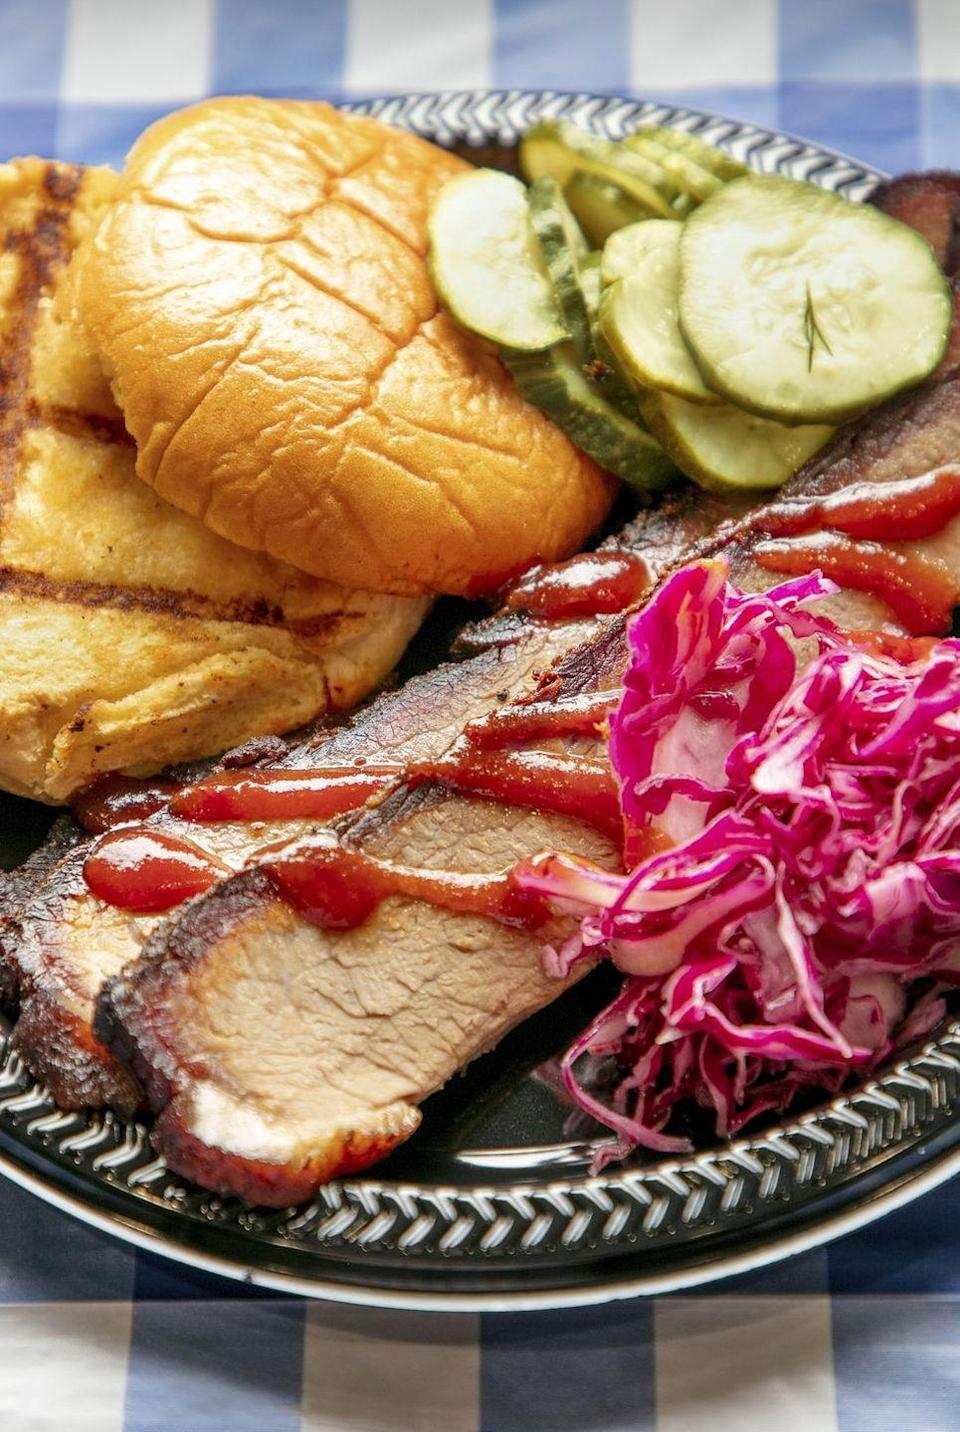 """<p>Make this tender brisket ahead, then finish it off on the grill just before serving. It's delicious on its own or pile it onto a toasted bun with some of our favorites: BBQ sauce, coleslaw, and pickles. </p><p><a href=""""https://www.thepioneerwoman.com/food-cooking/recipes/a35993018/spicy-bbq-brisket-recipe/"""" rel=""""nofollow noopener"""" target=""""_blank"""" data-ylk=""""slk:Get Ree's recipe."""" class=""""link rapid-noclick-resp""""><strong>Get Ree's recipe.</strong></a></p><p><a class=""""link rapid-noclick-resp"""" href=""""https://go.redirectingat.com?id=74968X1596630&url=https%3A%2F%2Fwww.walmart.com%2Fsearch%2F%3Fquery%3Dpioneer%2Bwoman%2Bknives&sref=https%3A%2F%2Fwww.thepioneerwoman.com%2Ffood-cooking%2Fmeals-menus%2Fg36109352%2Ffathers-day-dinner-recipes%2F"""" rel=""""nofollow noopener"""" target=""""_blank"""" data-ylk=""""slk:SHOP KNIVES"""">SHOP KNIVES</a></p>"""